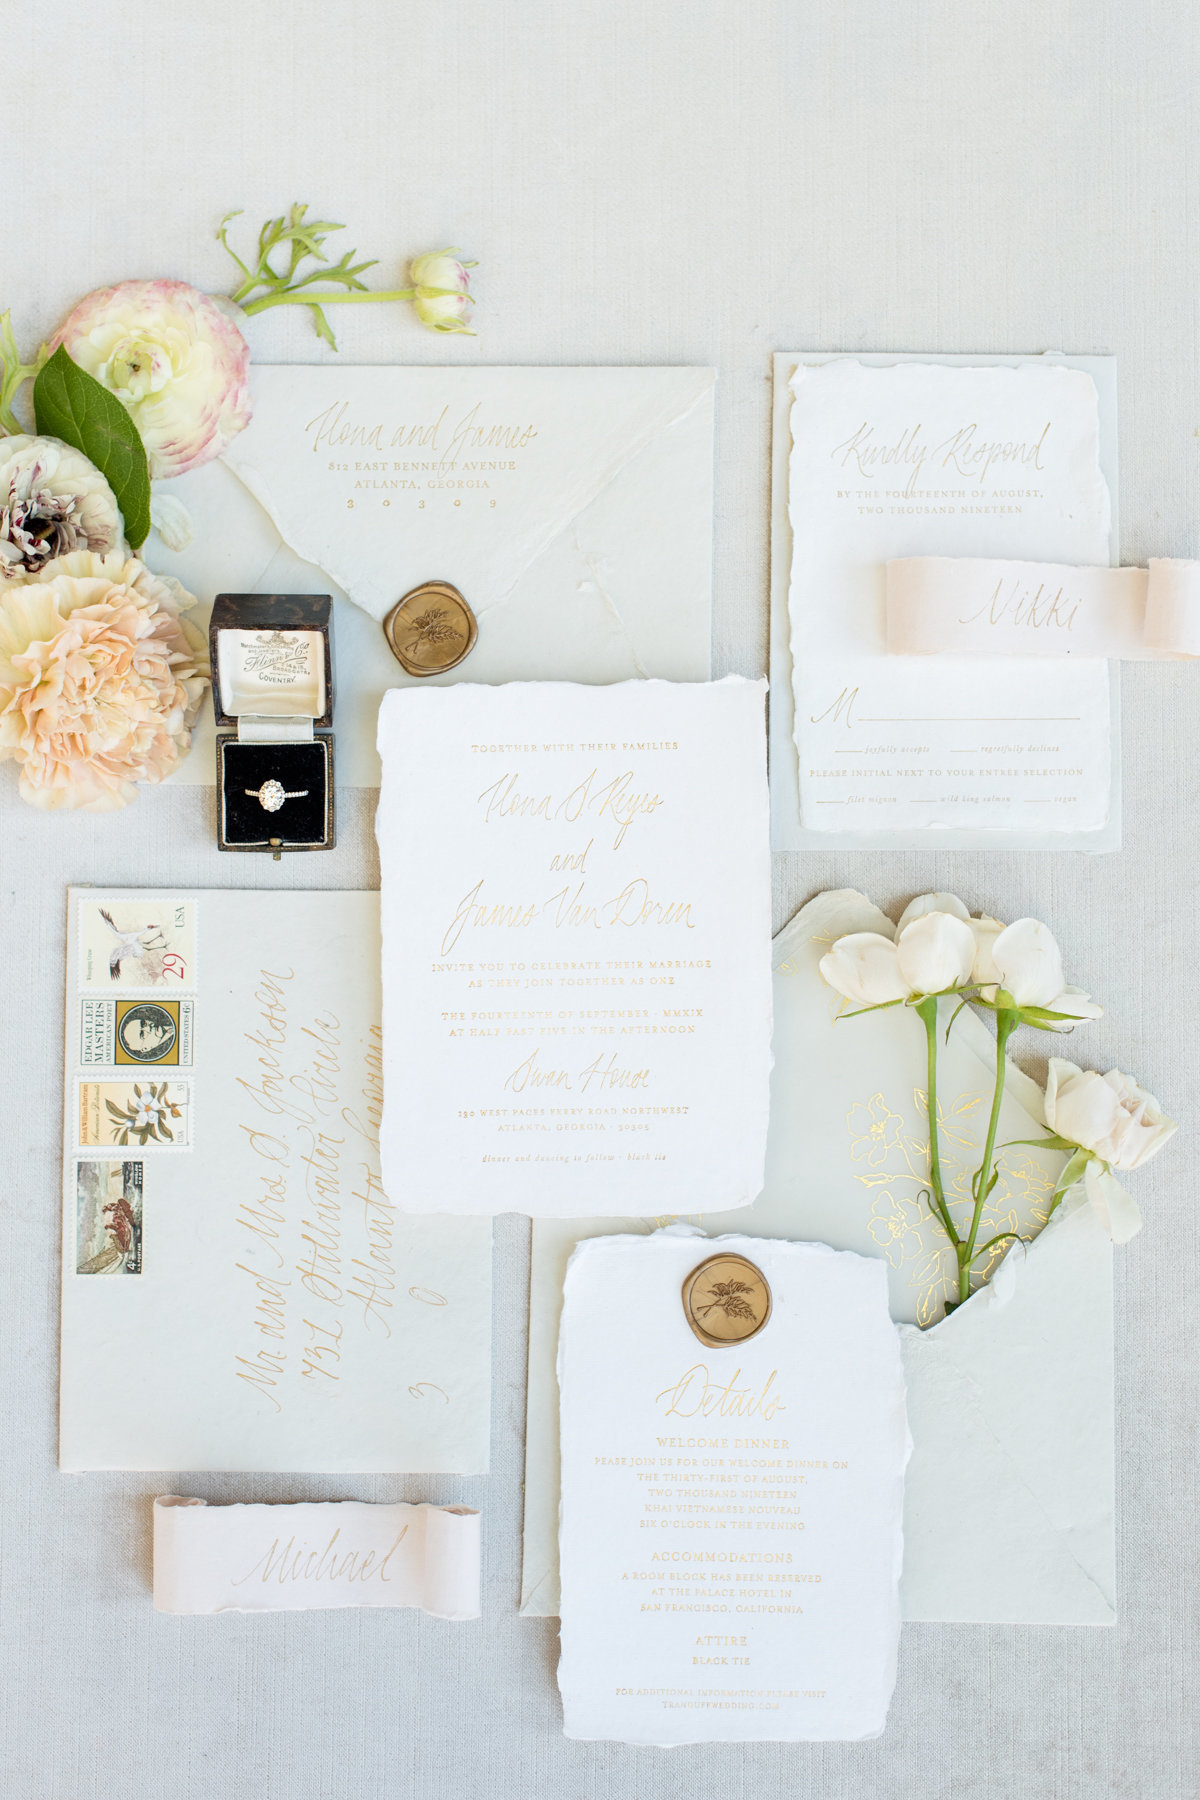 A fine art invitation suite by Ink and Press Co styled with flowers and a vintage ring box